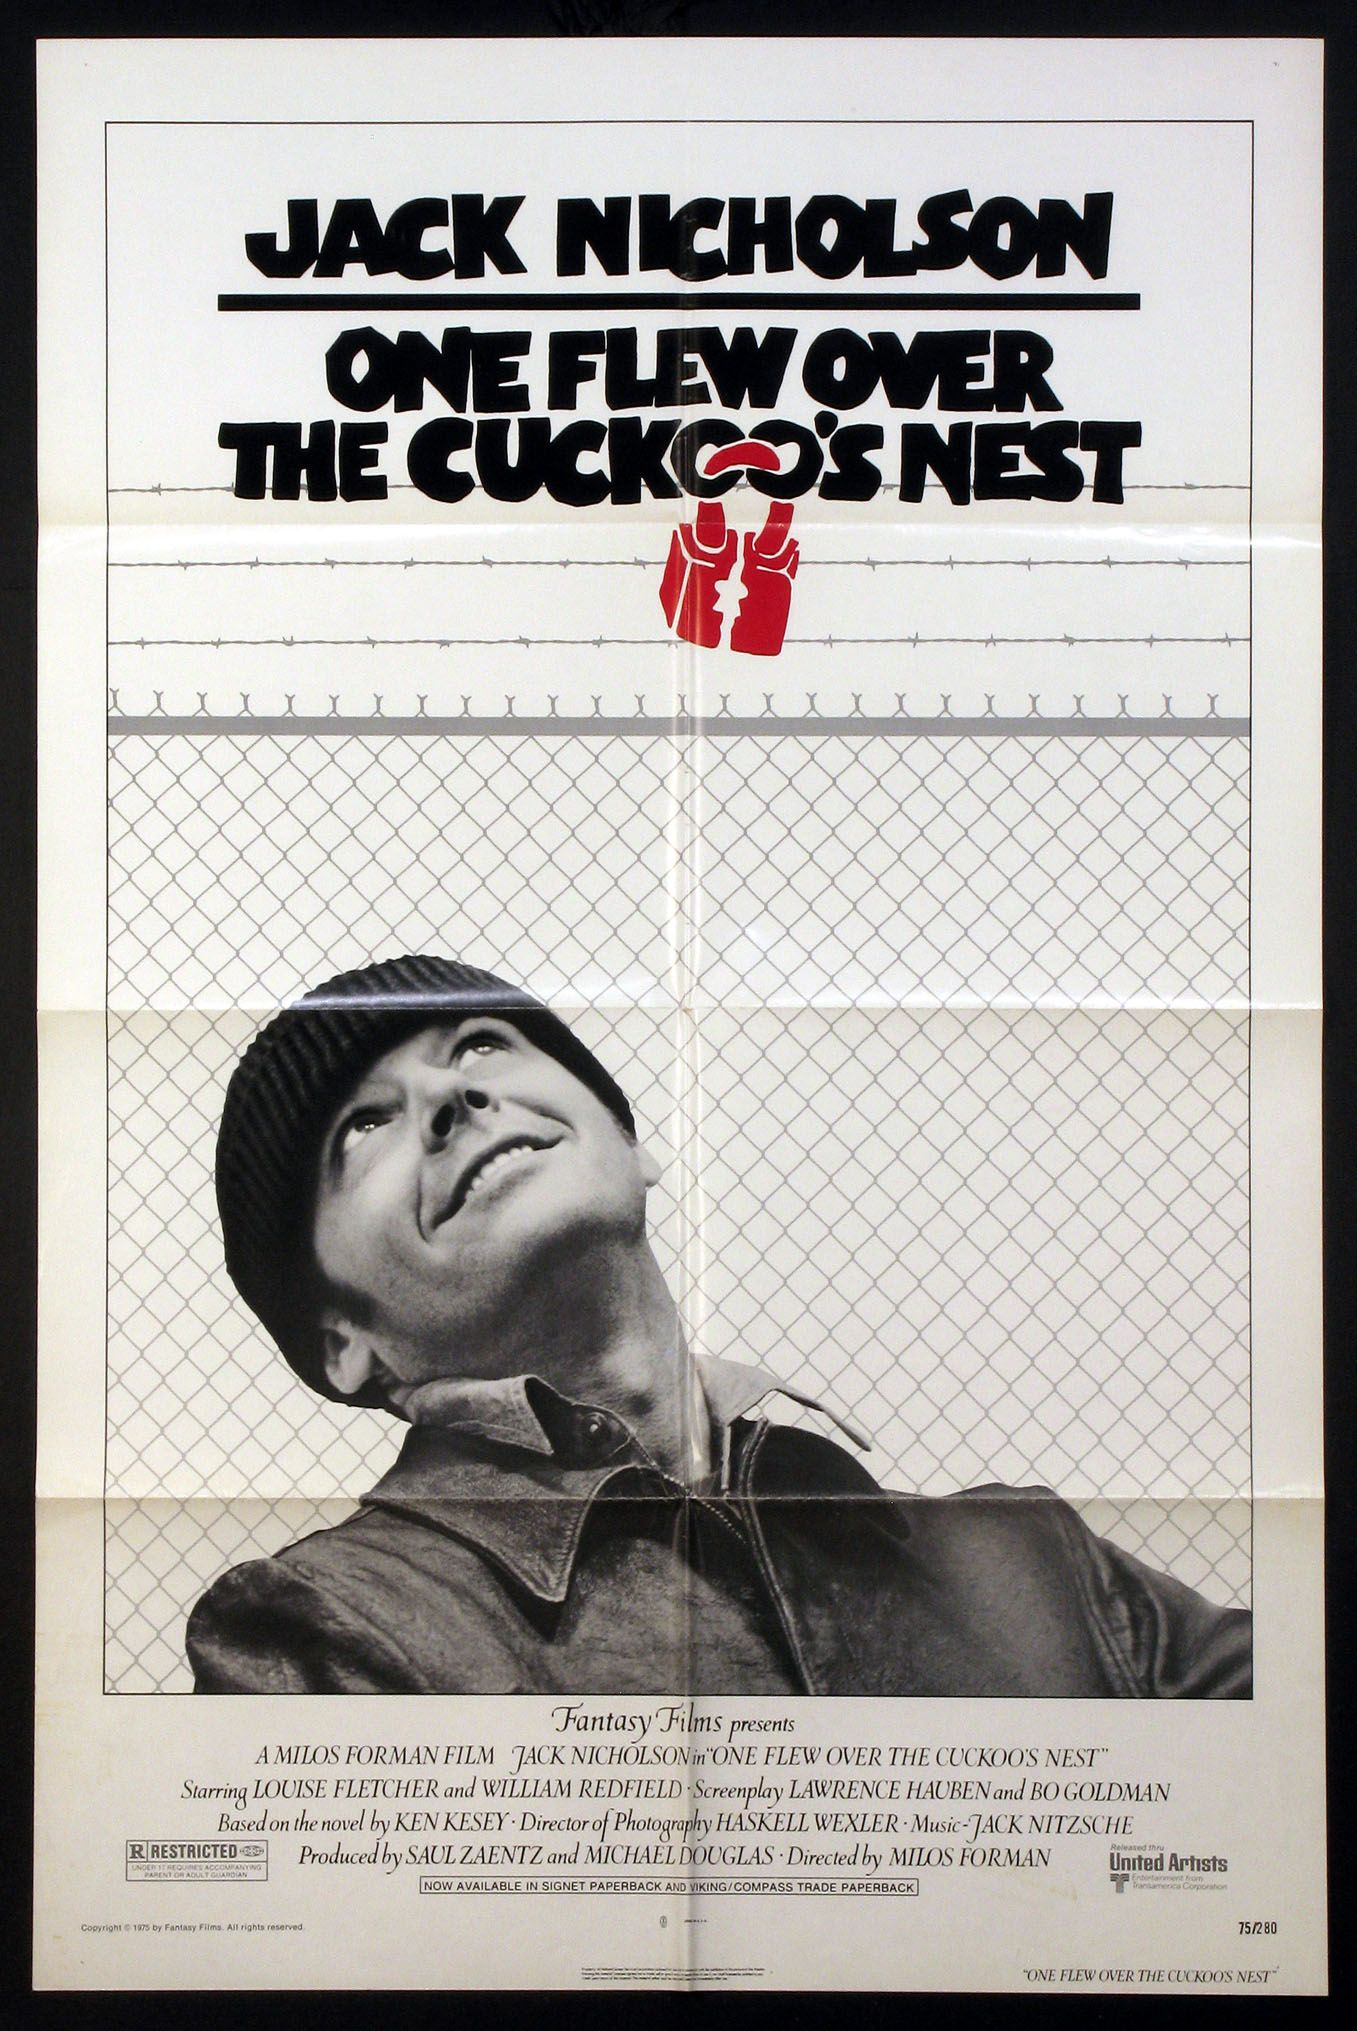 One Flew Over The Cuckoo S Nest 1975 Original One Sheet Size 27x41 Movie Poster Movie Posters Movie Posters Vintage Retro Film Posters